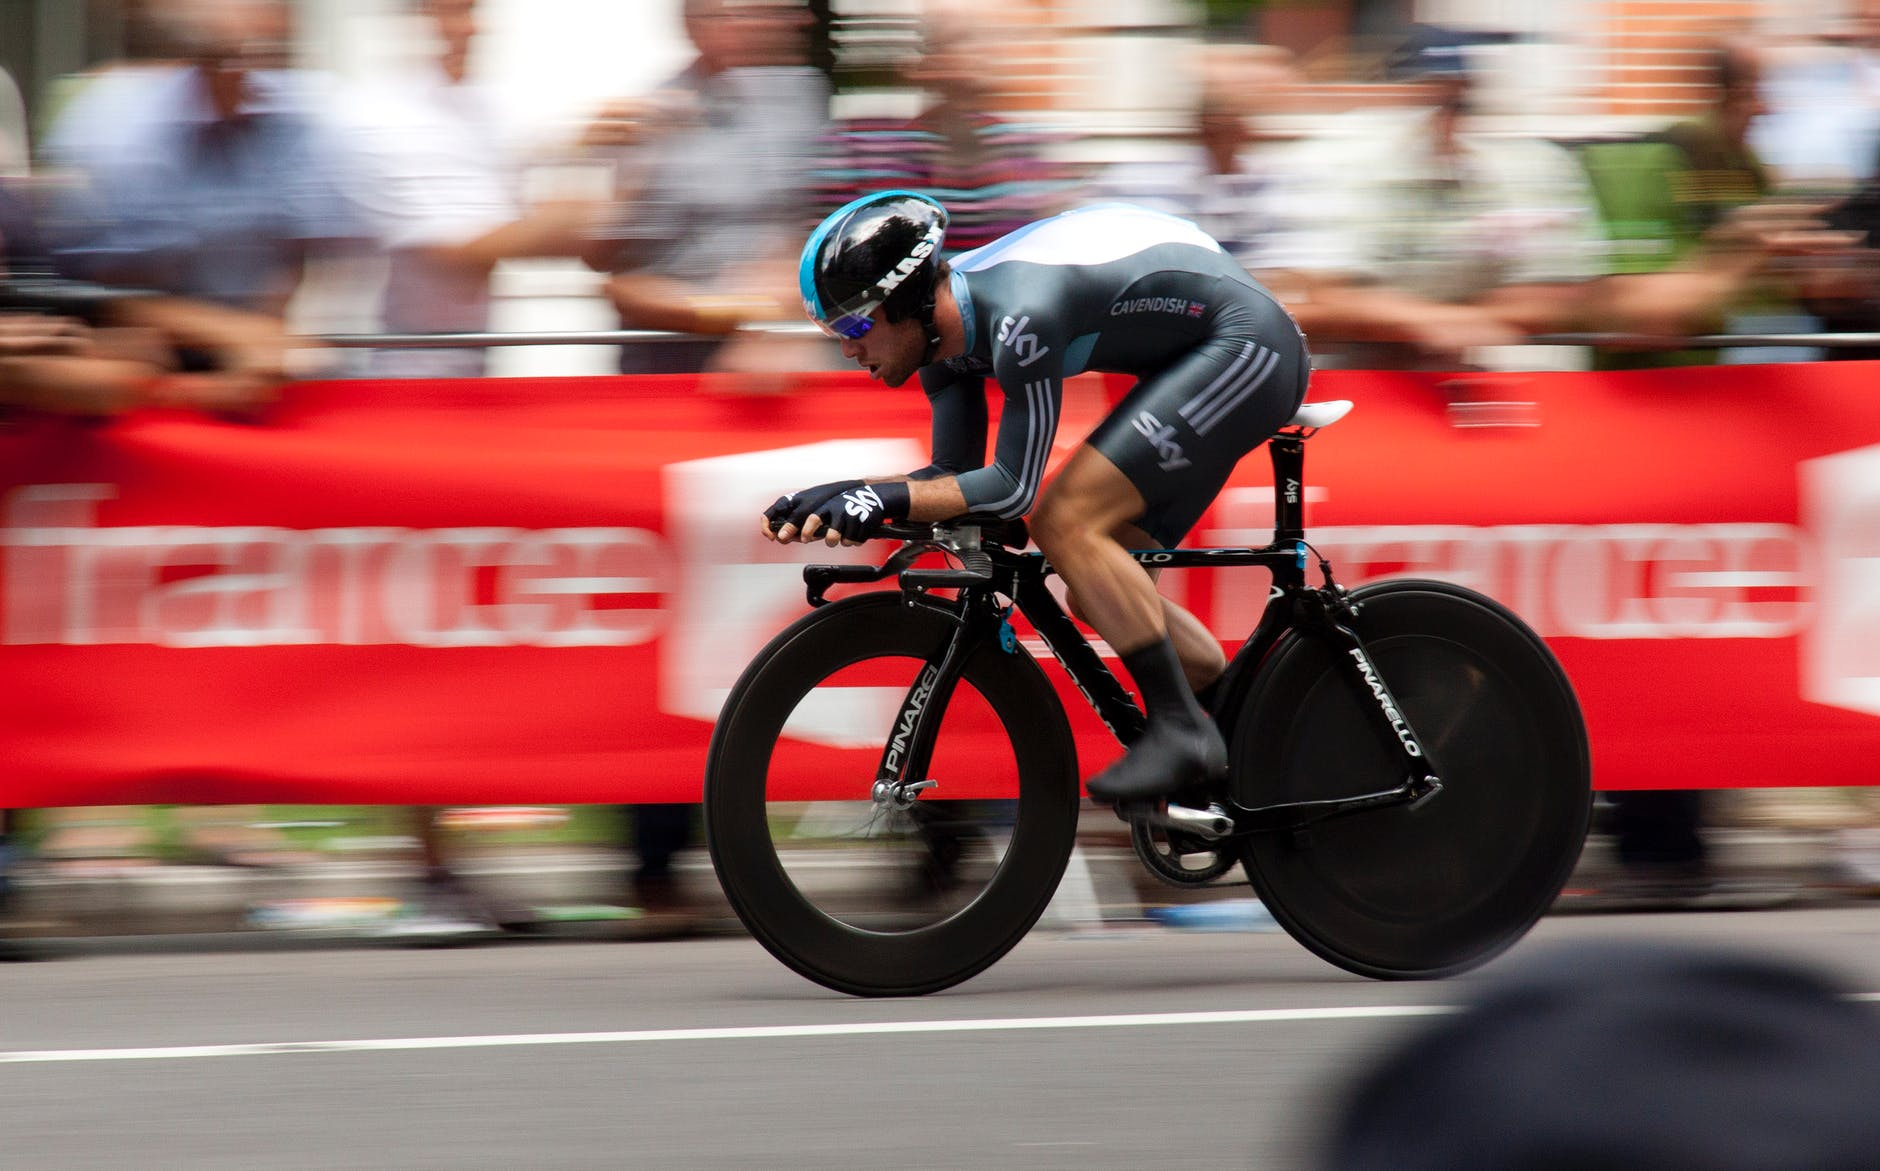 Racing cyclist, showing speed in financial websites and marketing